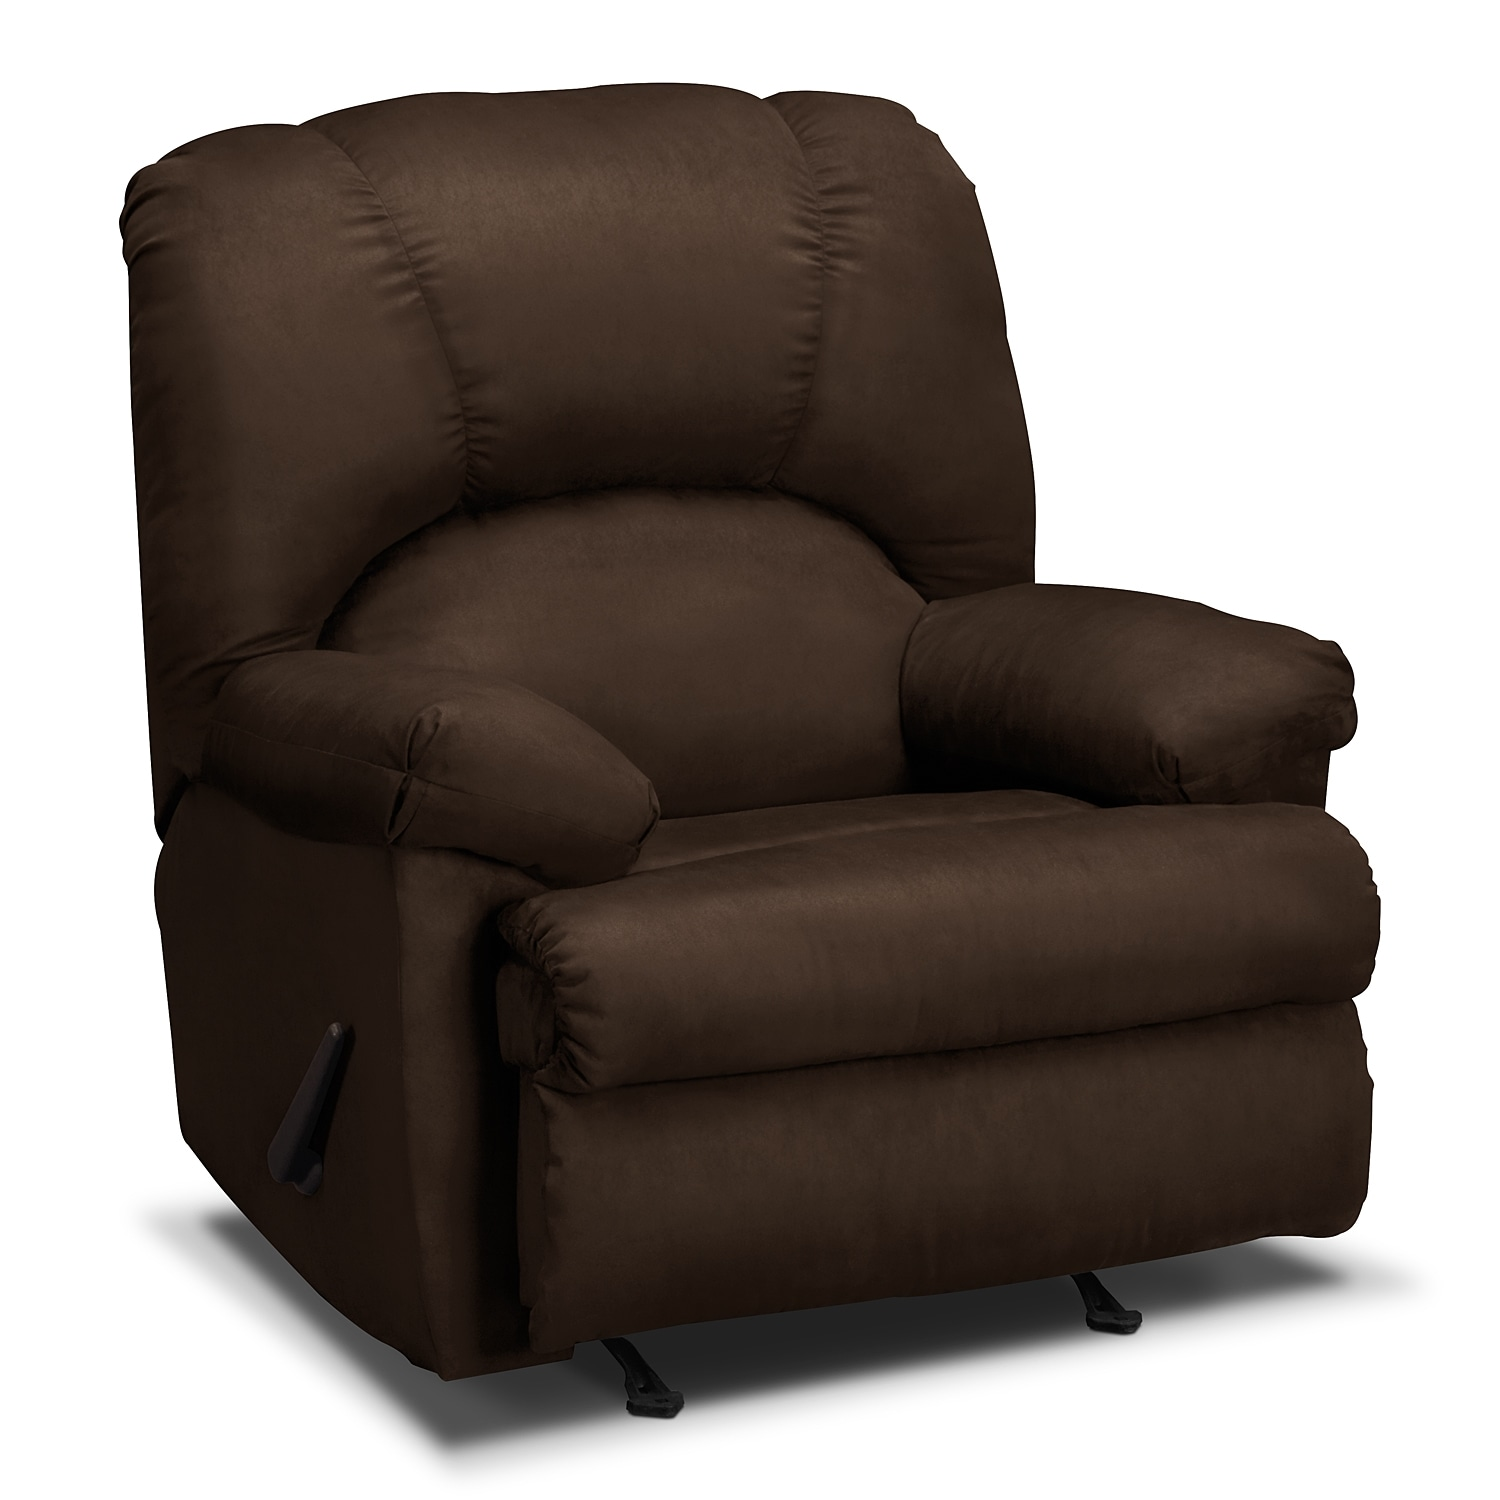 Quincy rocker recliner chocolate american signature for American living style furniture company